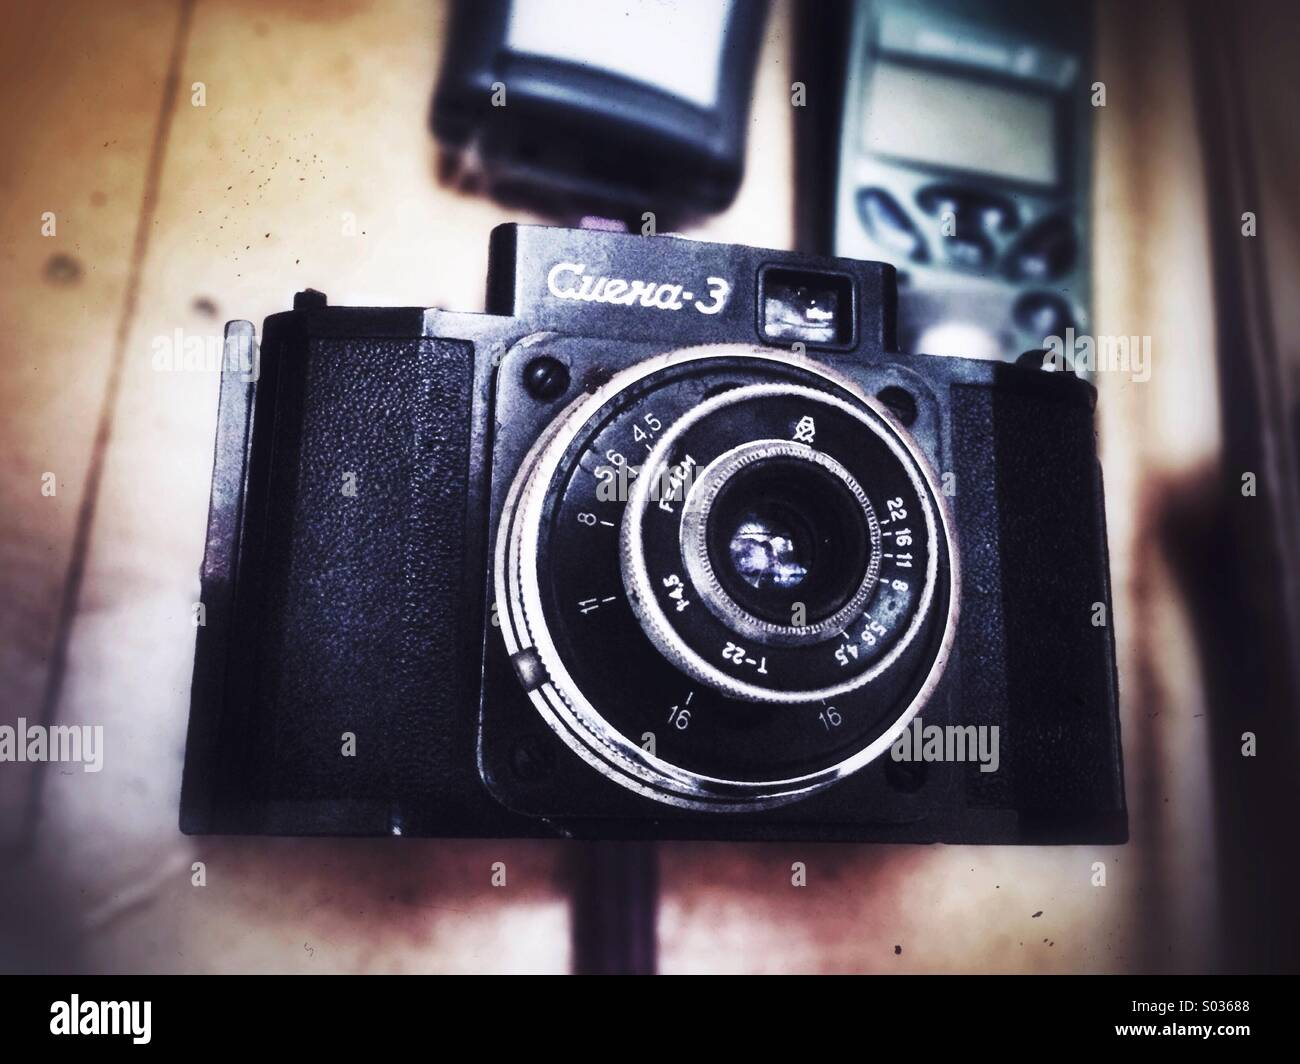 Camera of my dad, one of the oldest he has. - Stock Image